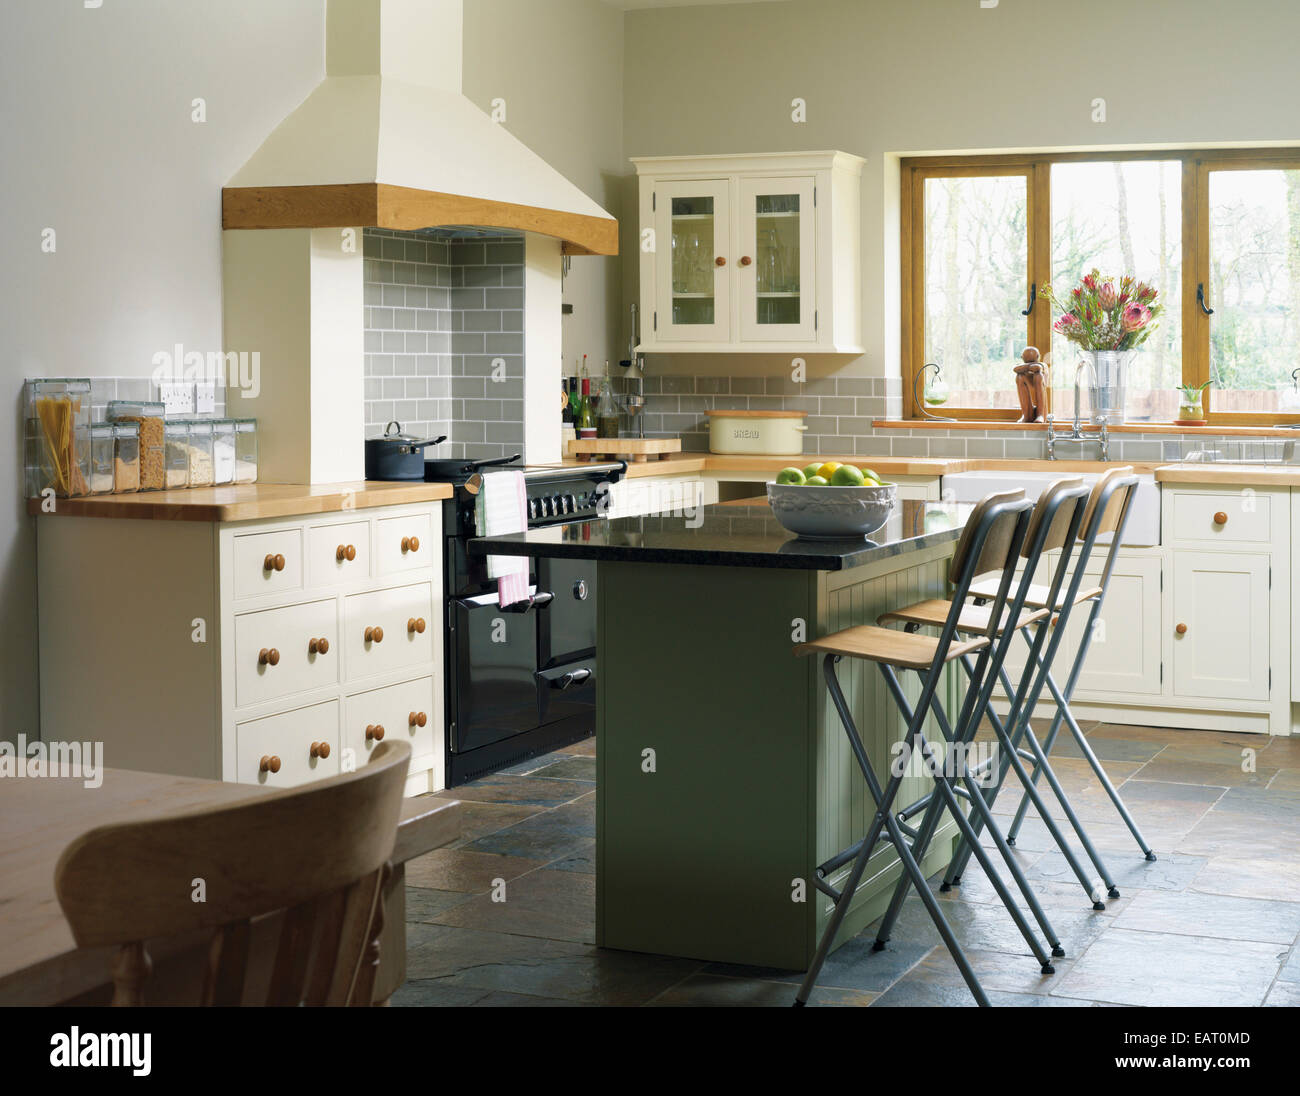 Central Island Breakfast Bar In Kitchen With Fitted Units Stock